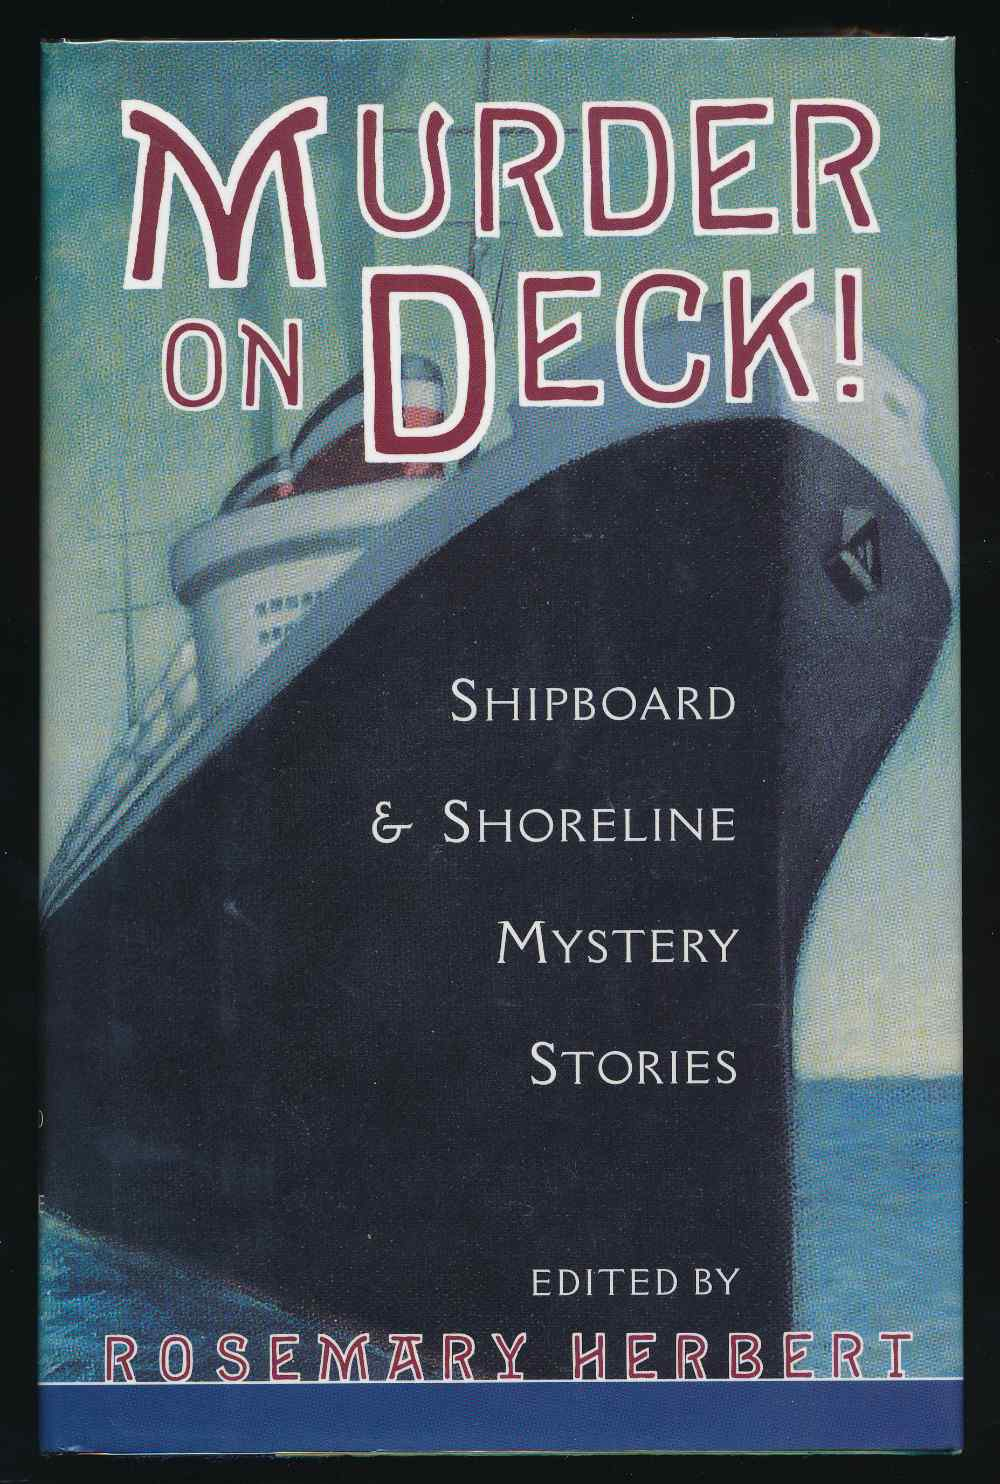 Murder on deck! Shipboard and shoreline mystery stories